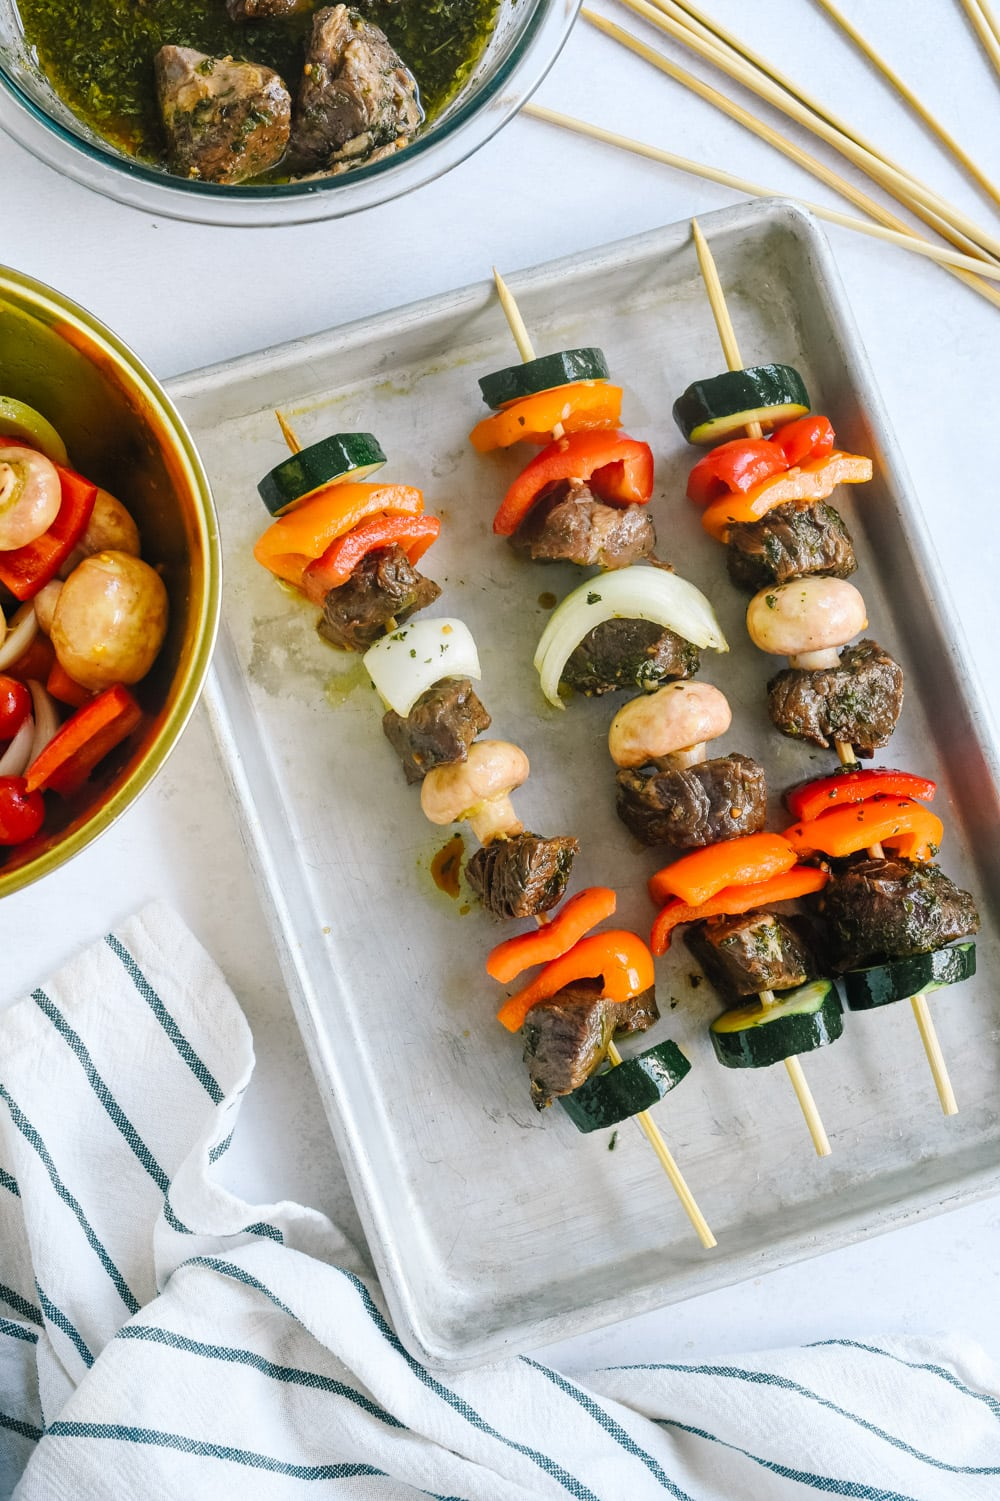 meat and veggies on skewers